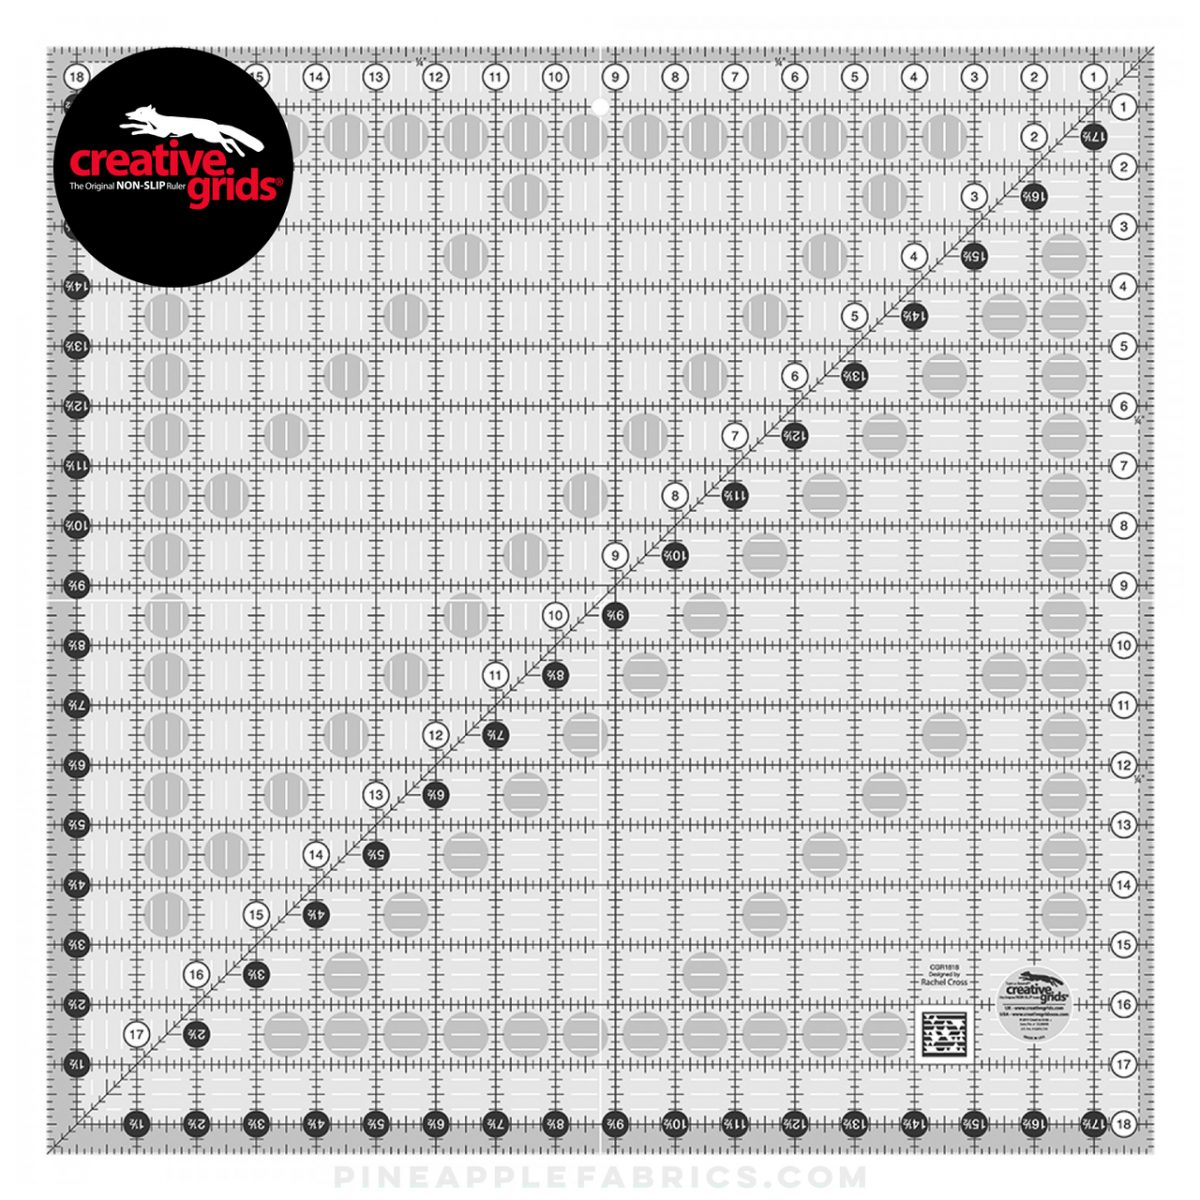 CGR1818 - Creative Grids Quilt Ruler 18-1/2in Square